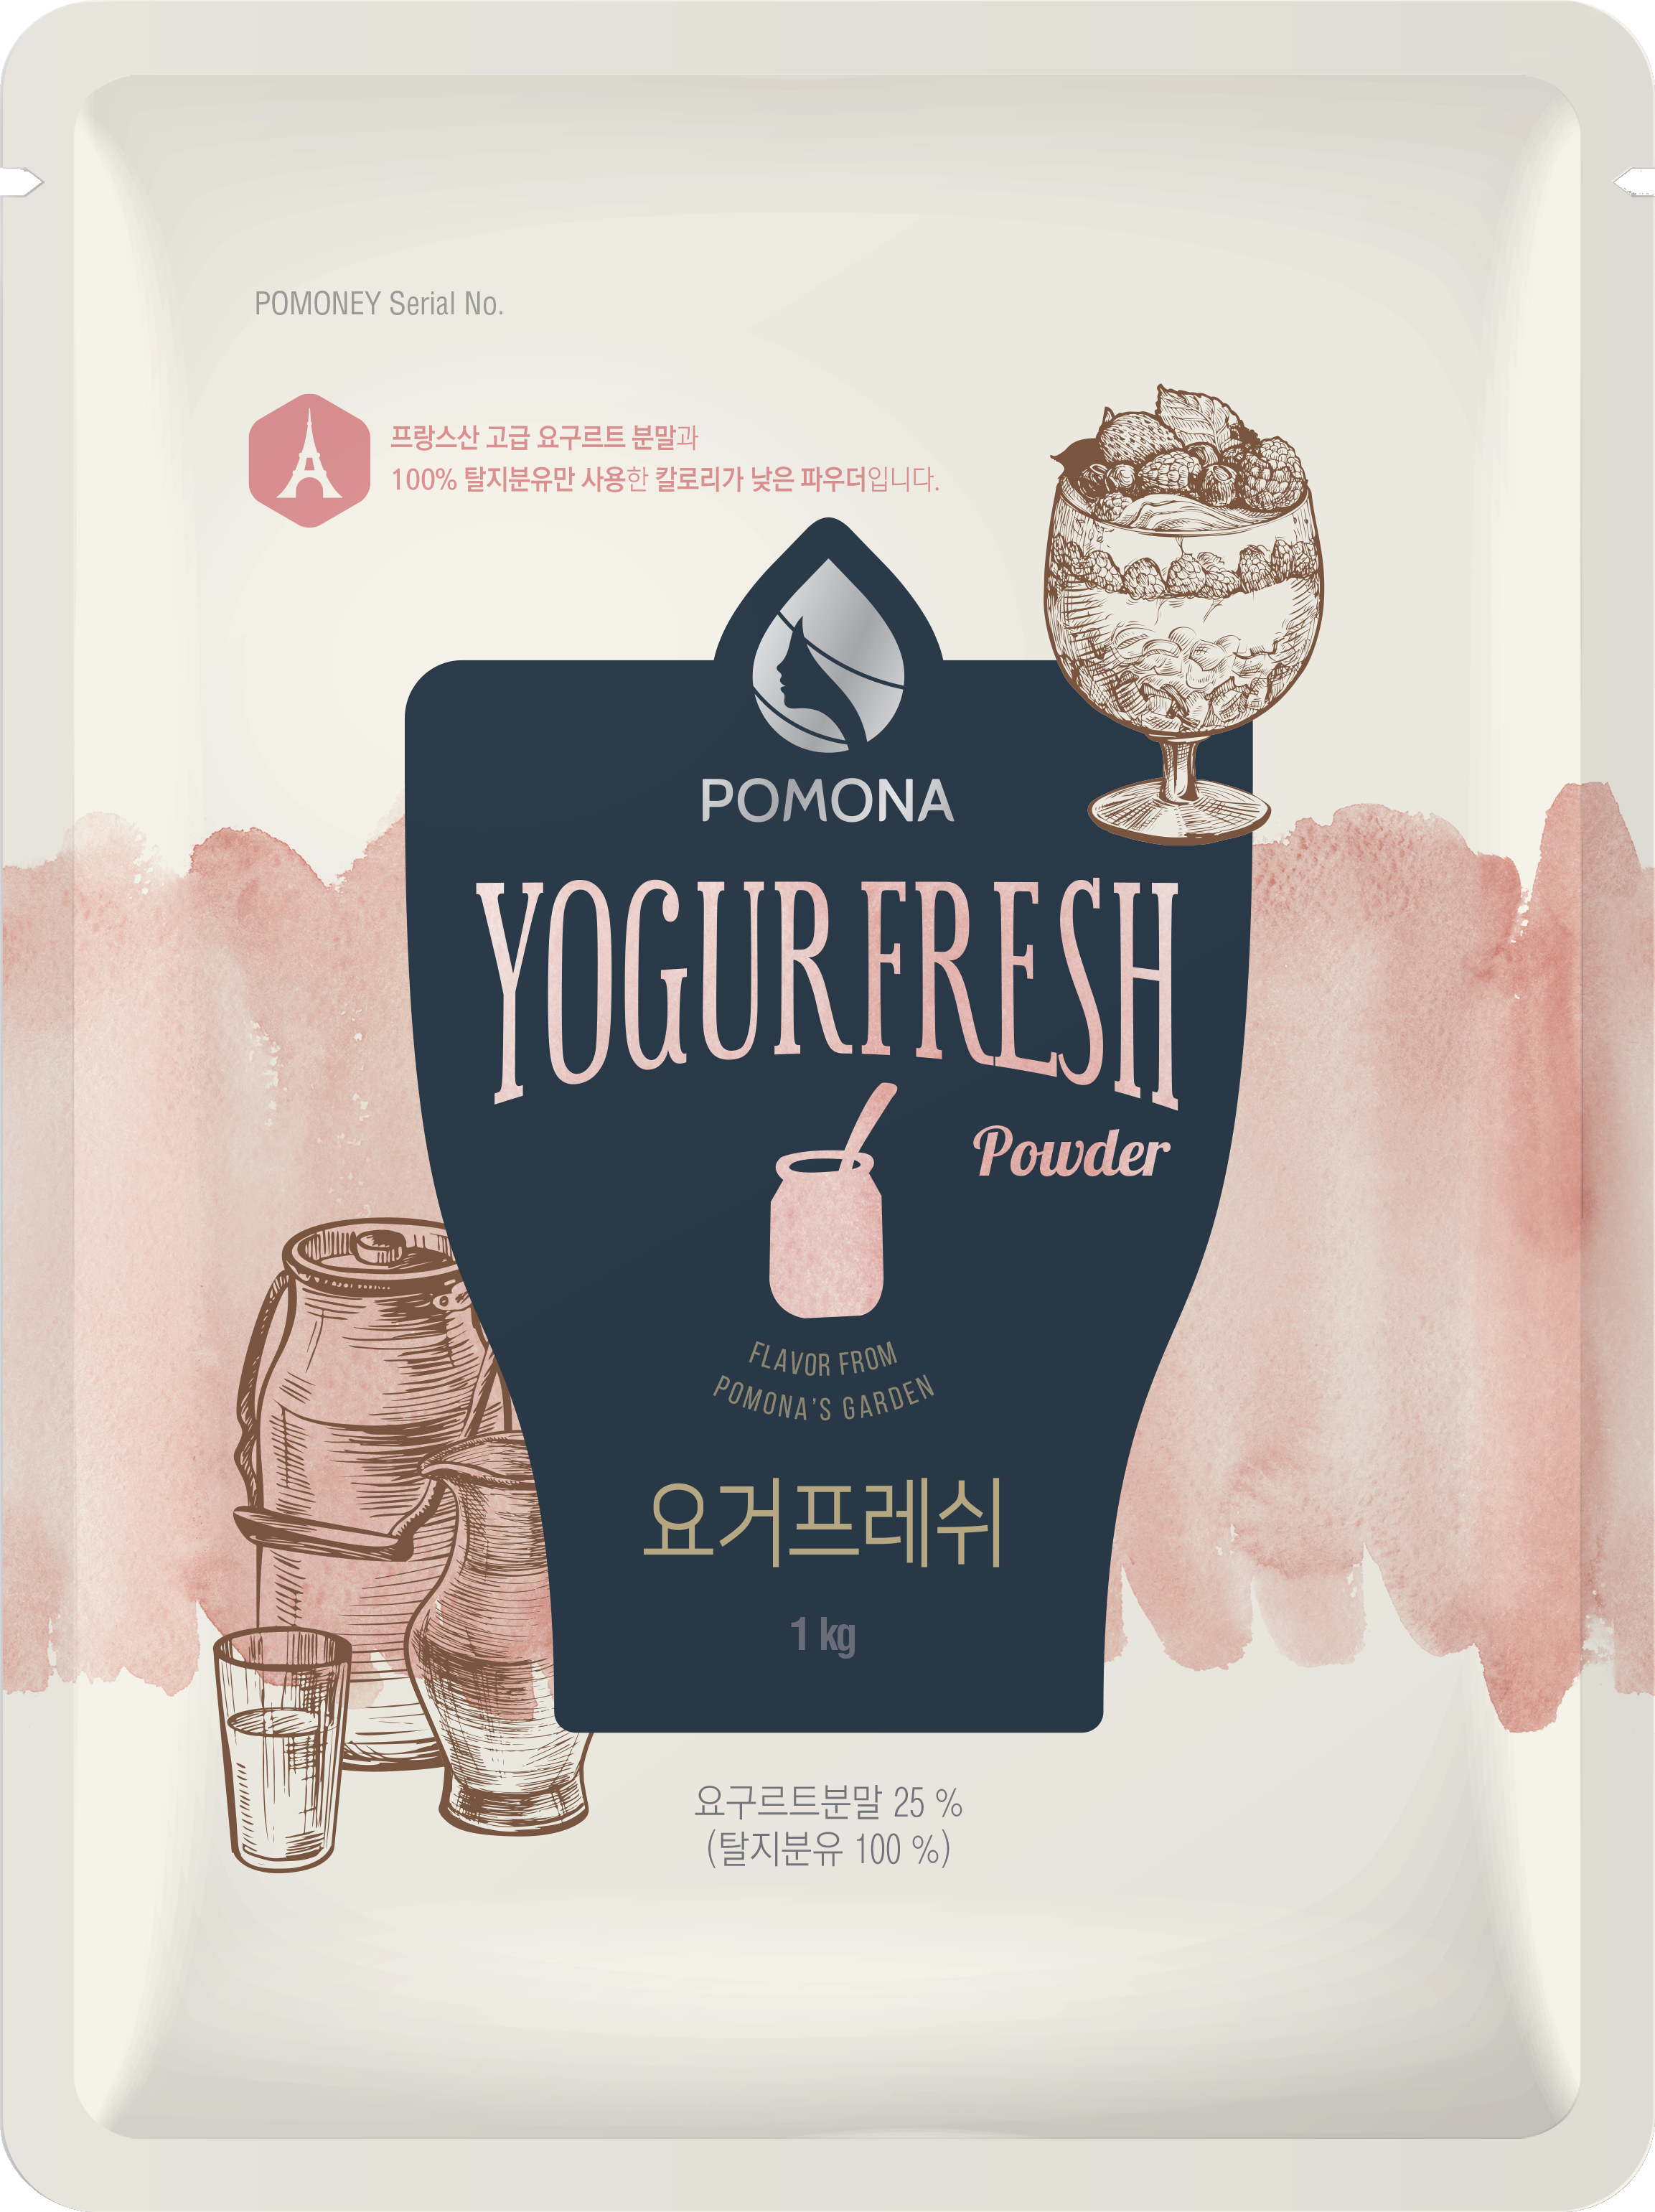 Pomona Yogurt Beverage Powder (Yogurt Fresh)